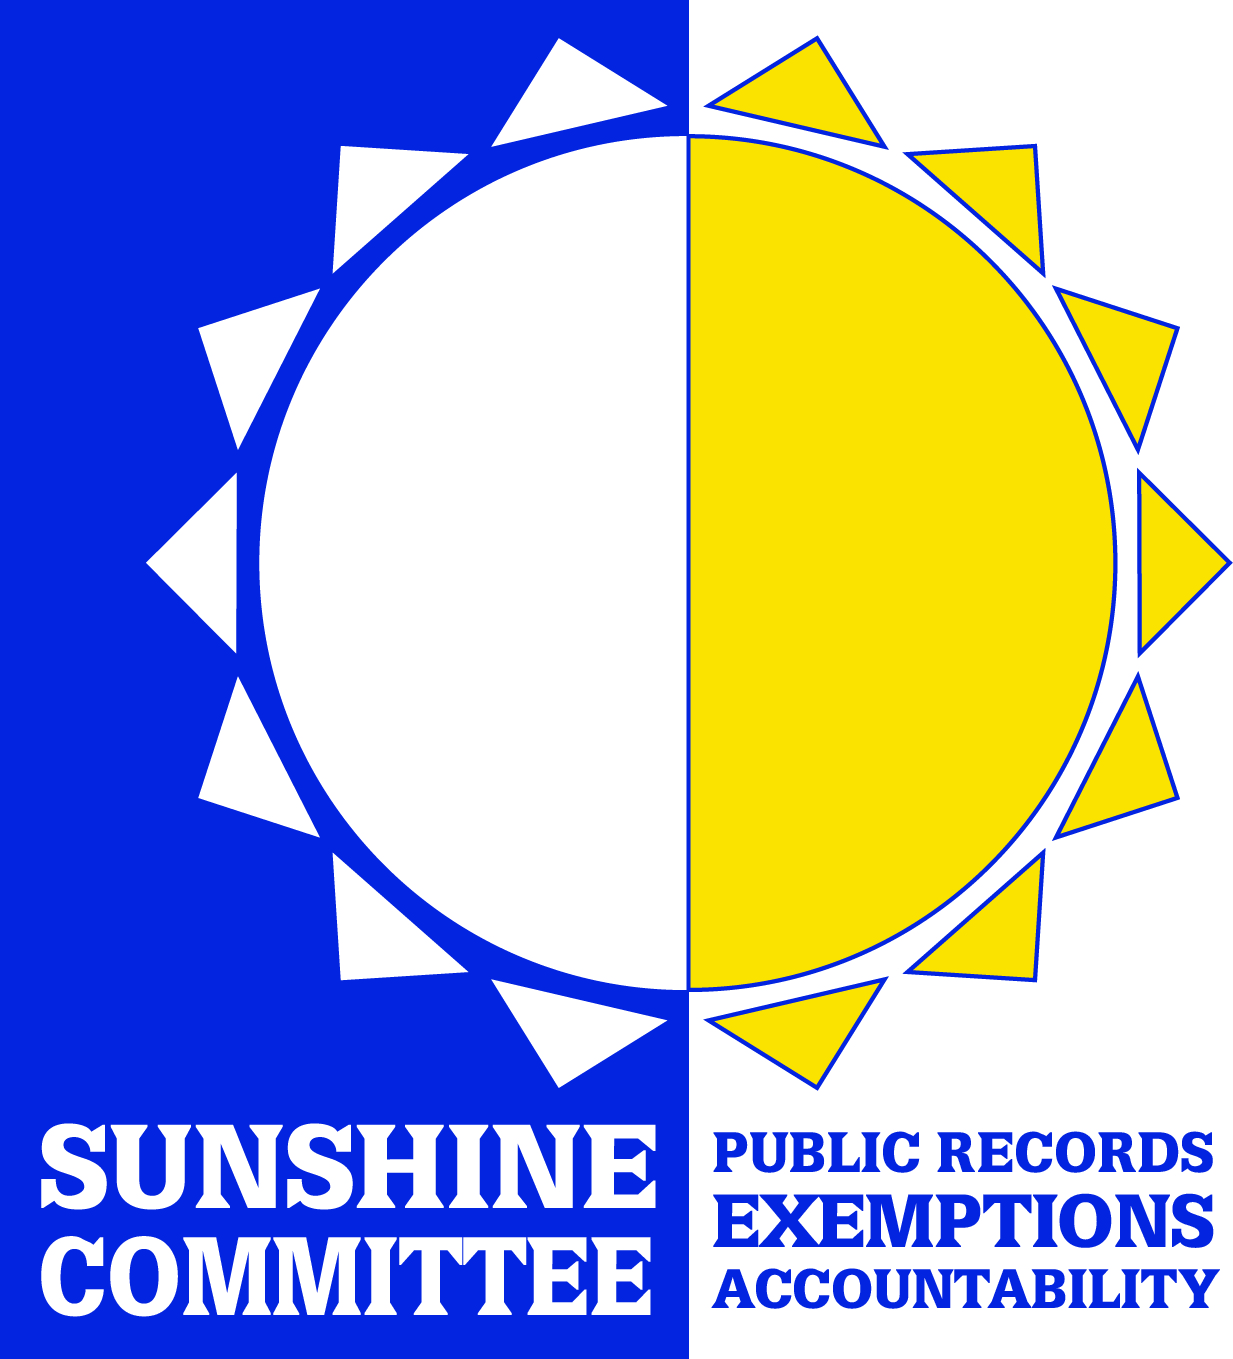 Sunshine-Committee-Logo.jpg